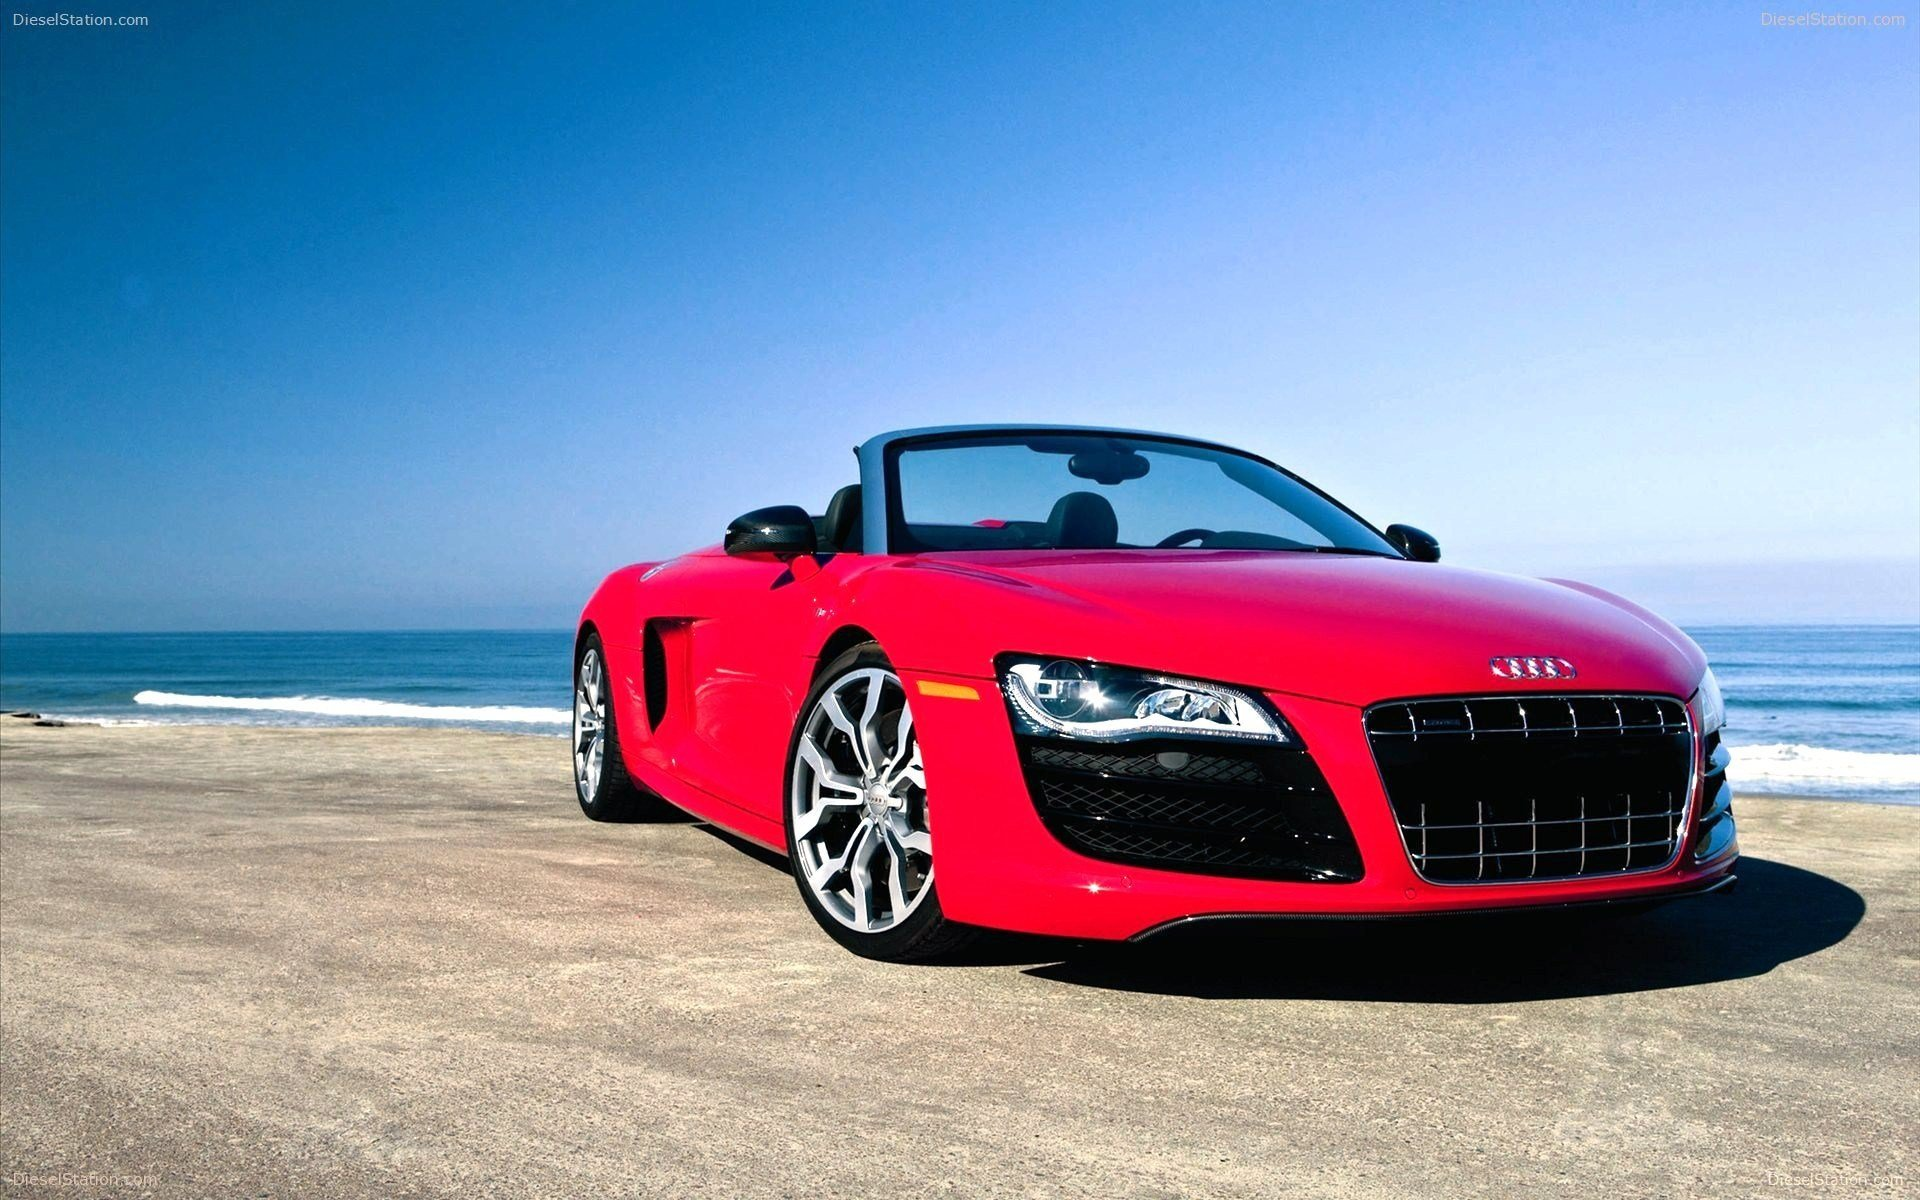 audi r8 high resolution wallpaper red audi r8 gt in beach car 1920x1200